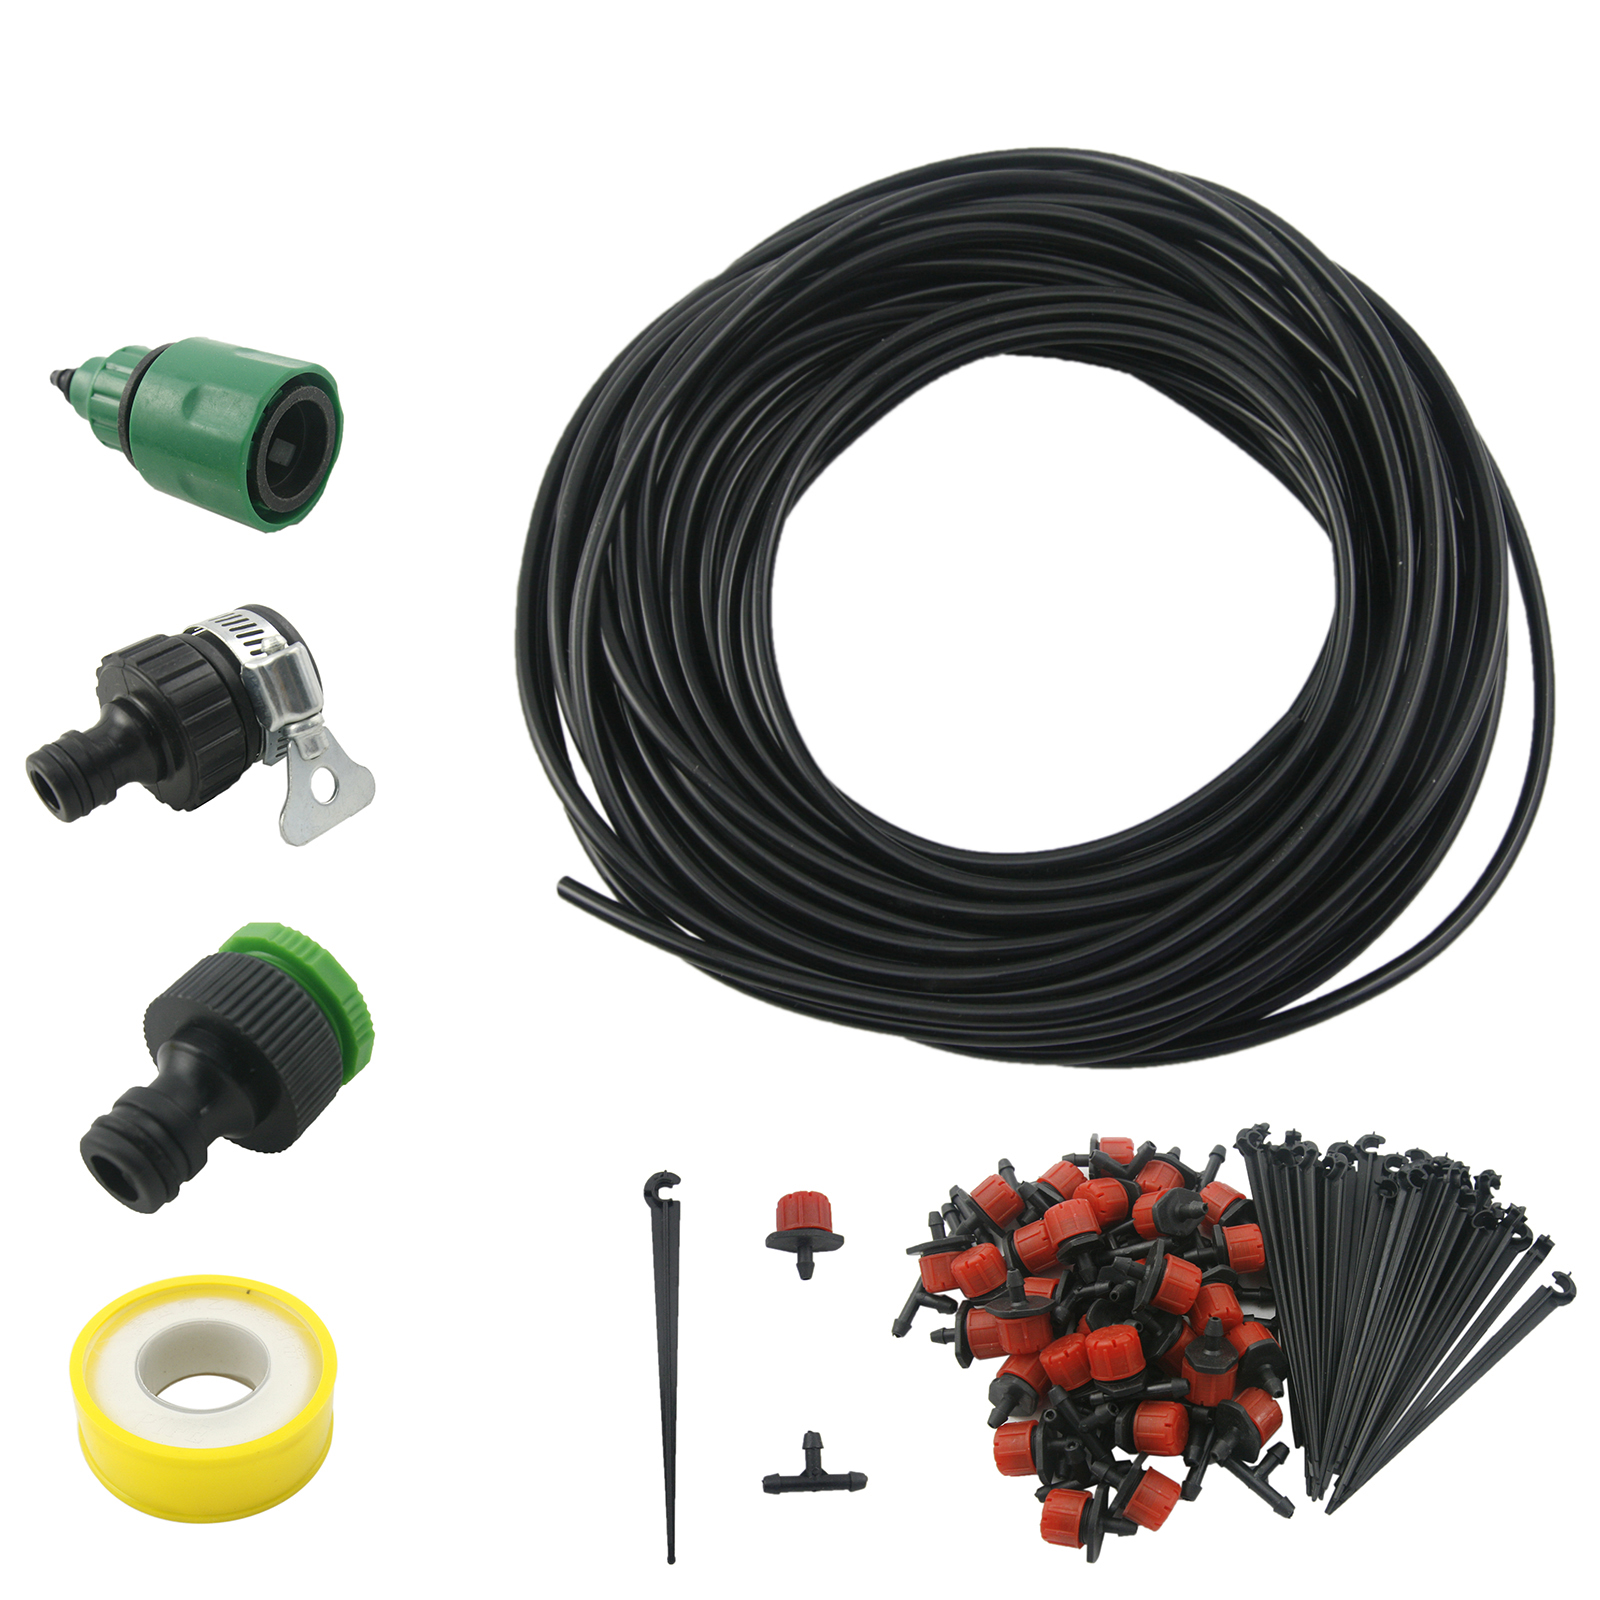 CO-Z Drip Irrigation System Automatic DIY Micro Plant Self Watering Garden Hose Kits(25m/82' Drip Irrigation System)